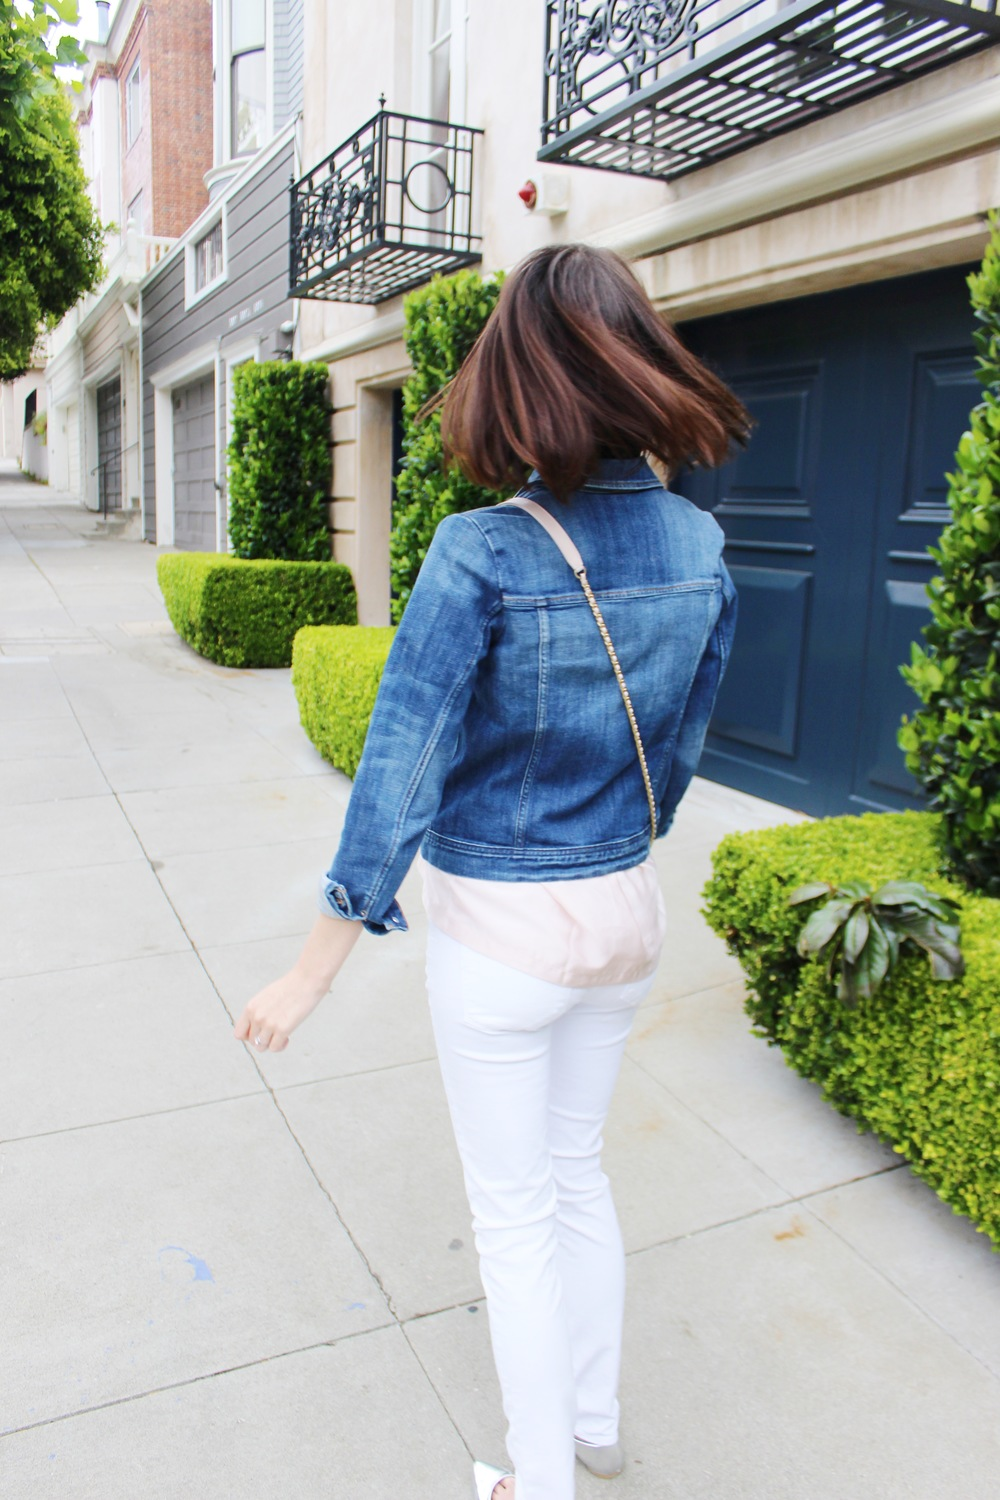 A Touch of Blush - White Jeans and Denim Jacket with a Blush Top | Sundays and Somedays